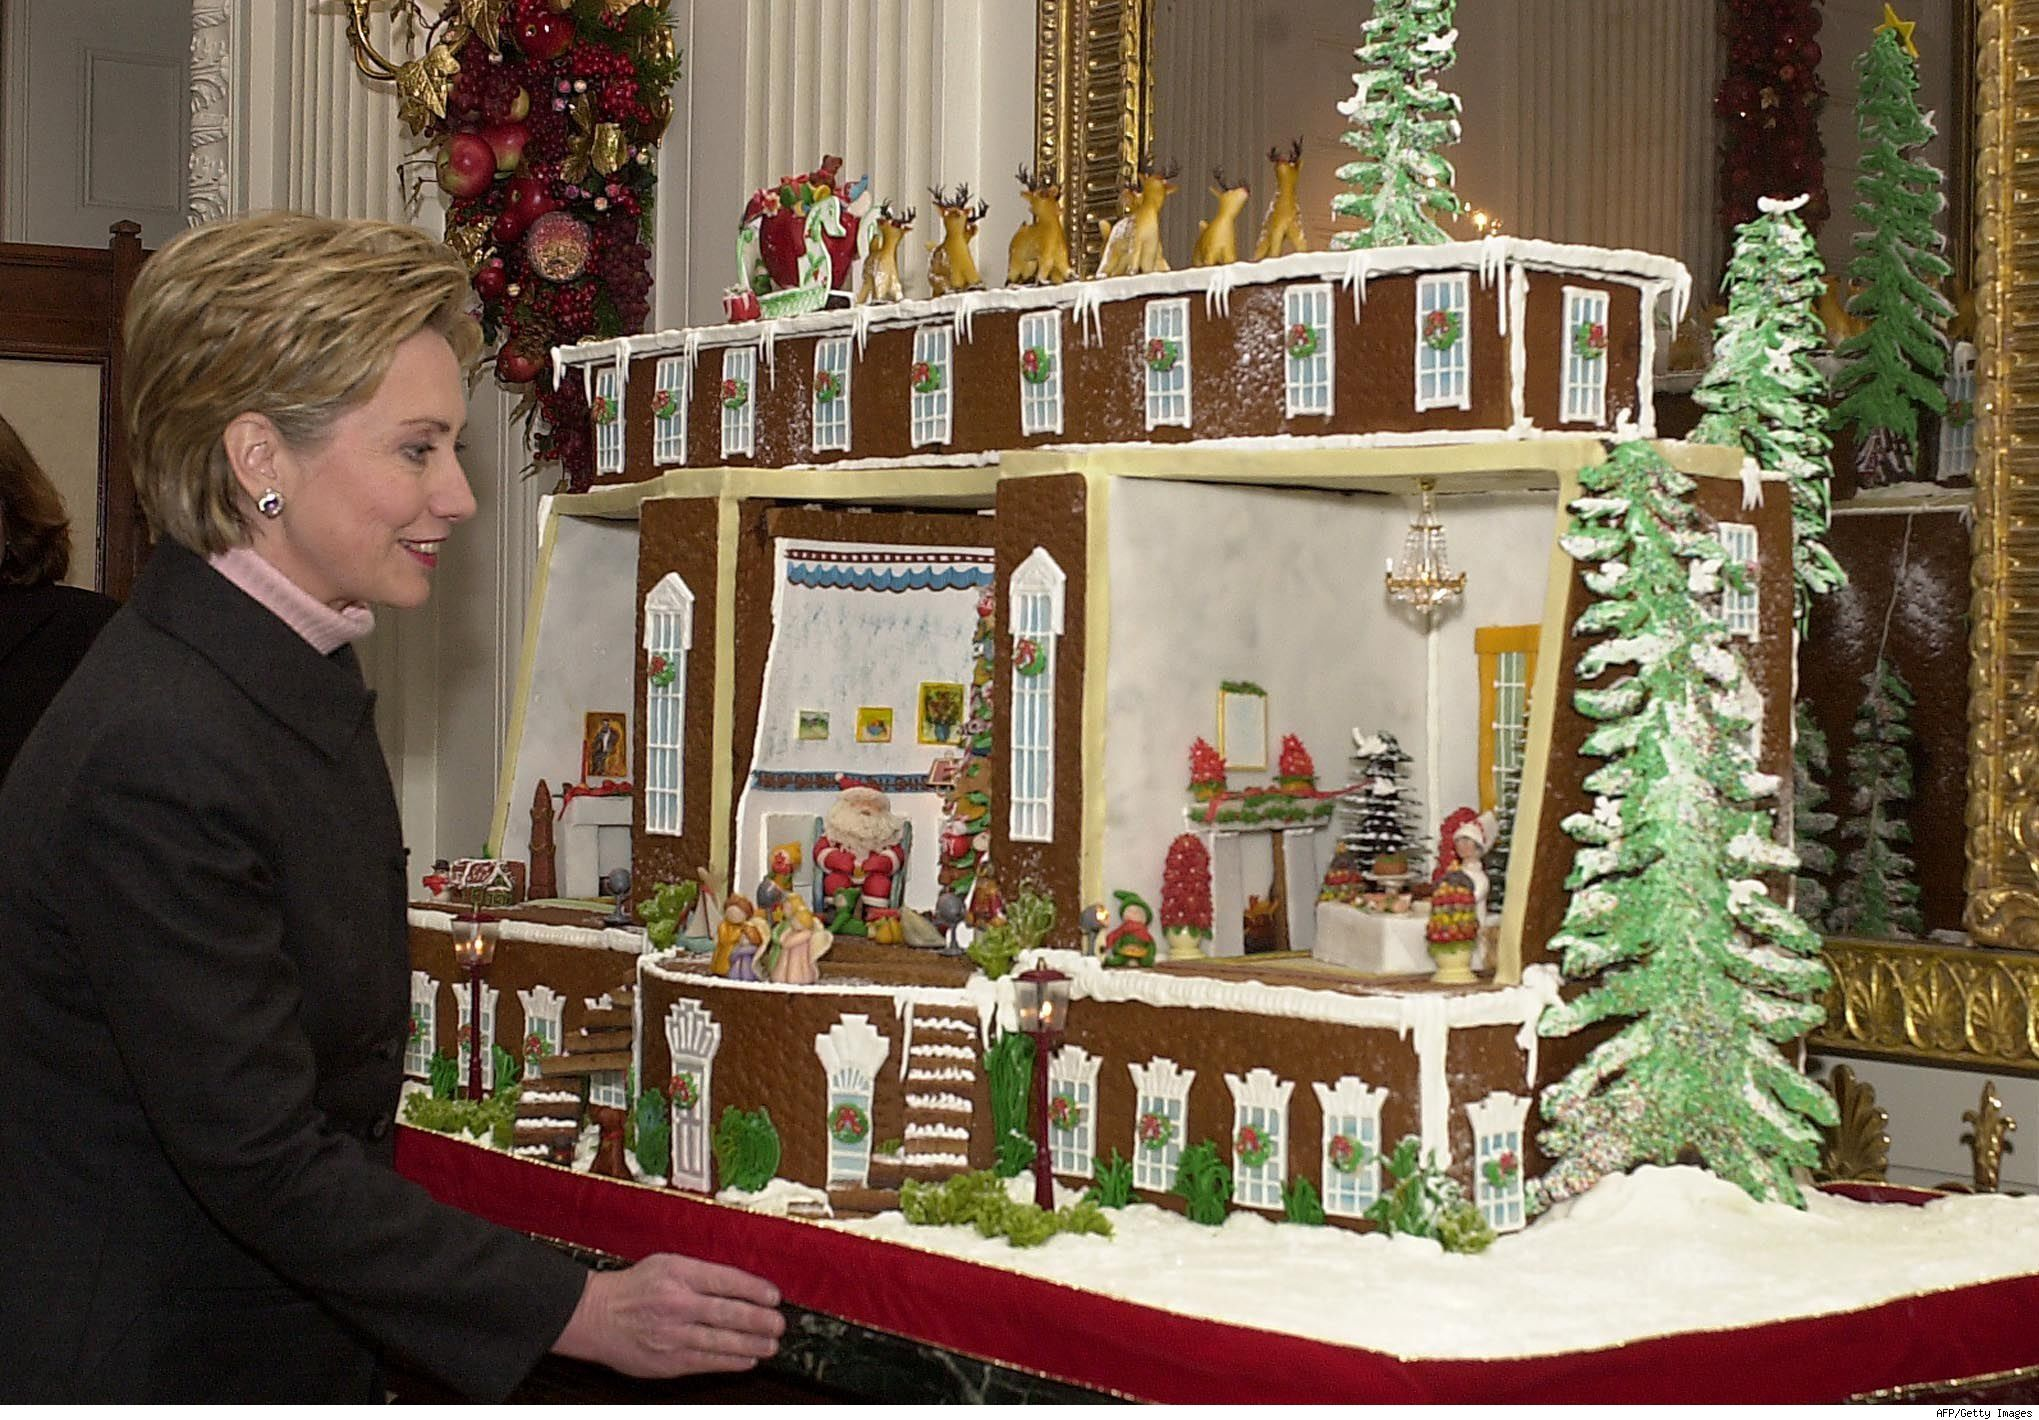 Here U S First Lady Hillary Clinton admires the gingerbread house